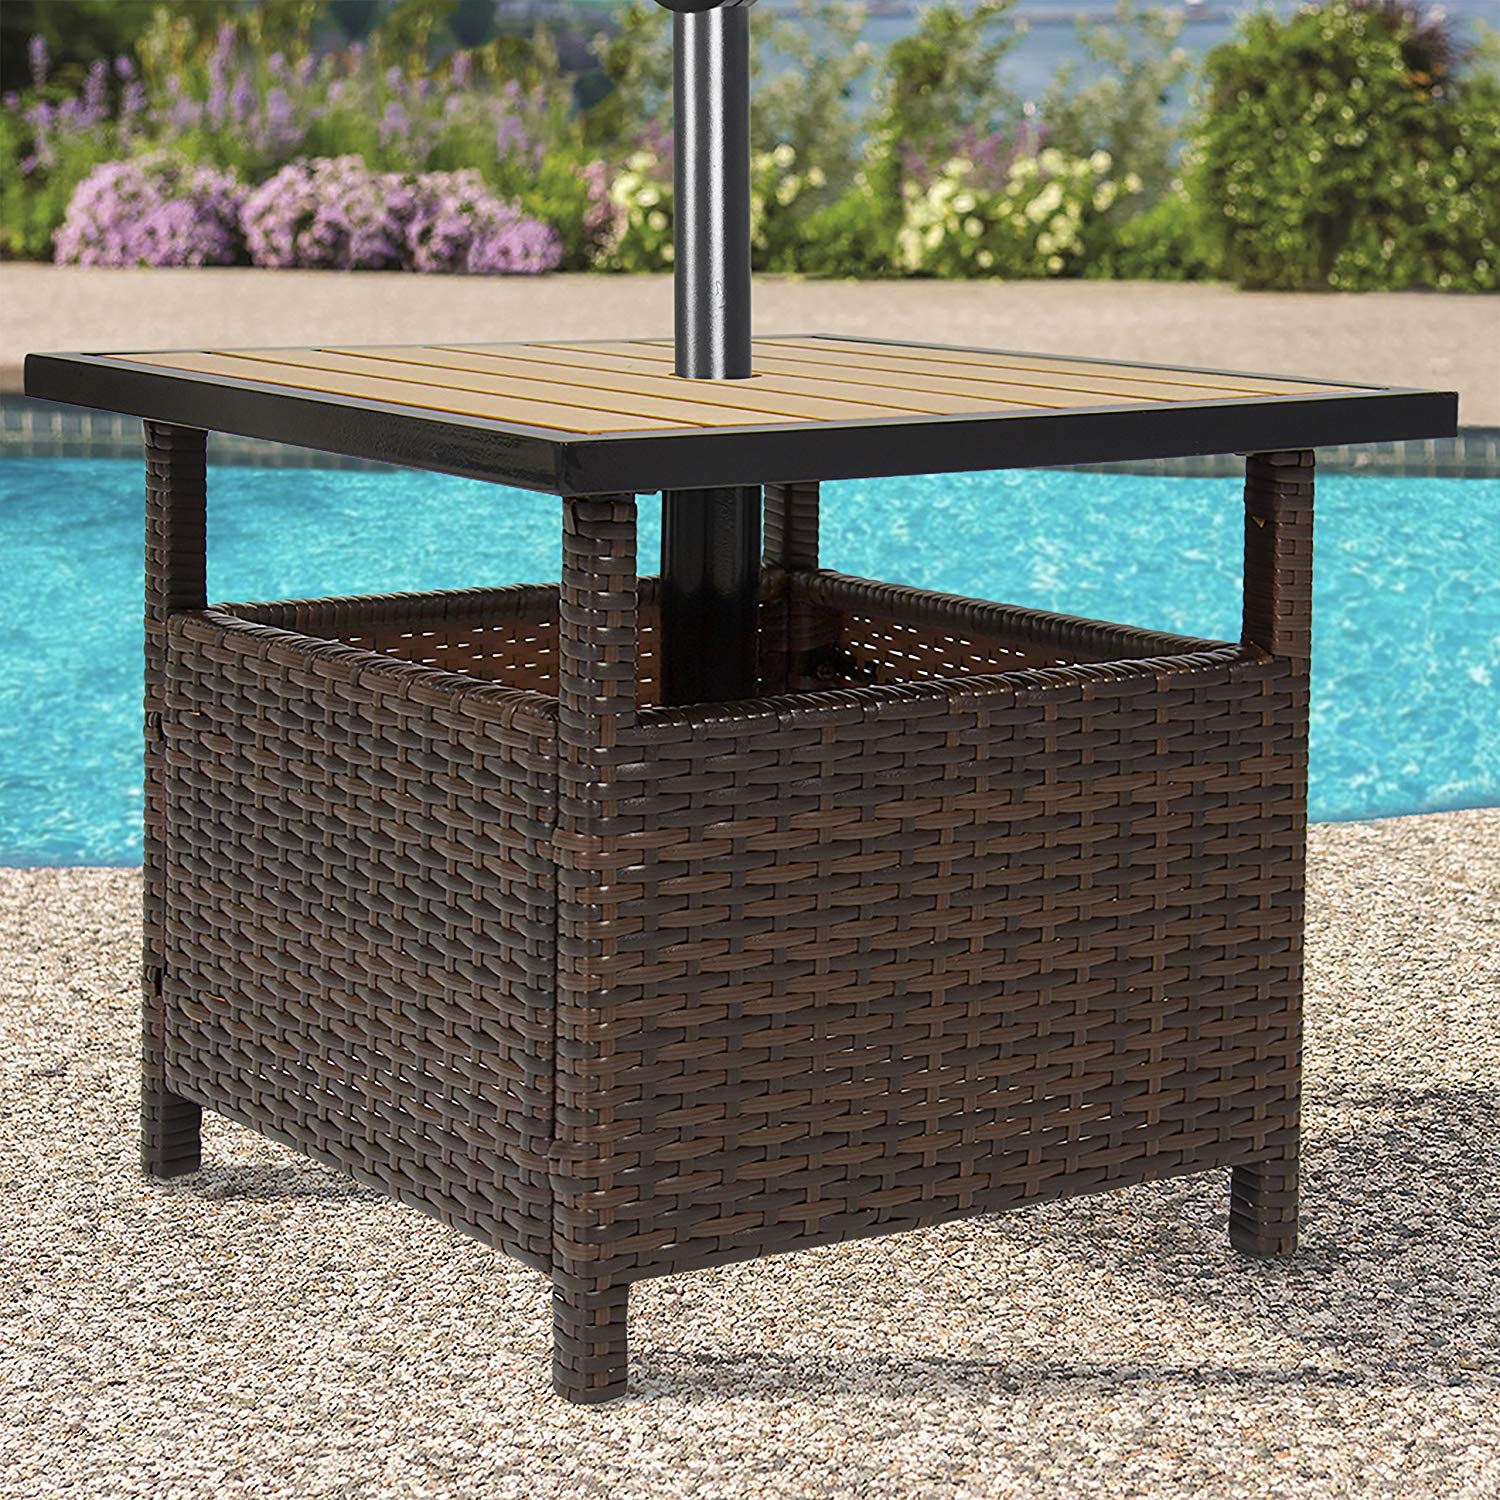 best choice products outdoor furniture wicker rattan patio umbrella accent table stand for garden pool deck brown acrylic small black round purple chair bunnings swing pottery